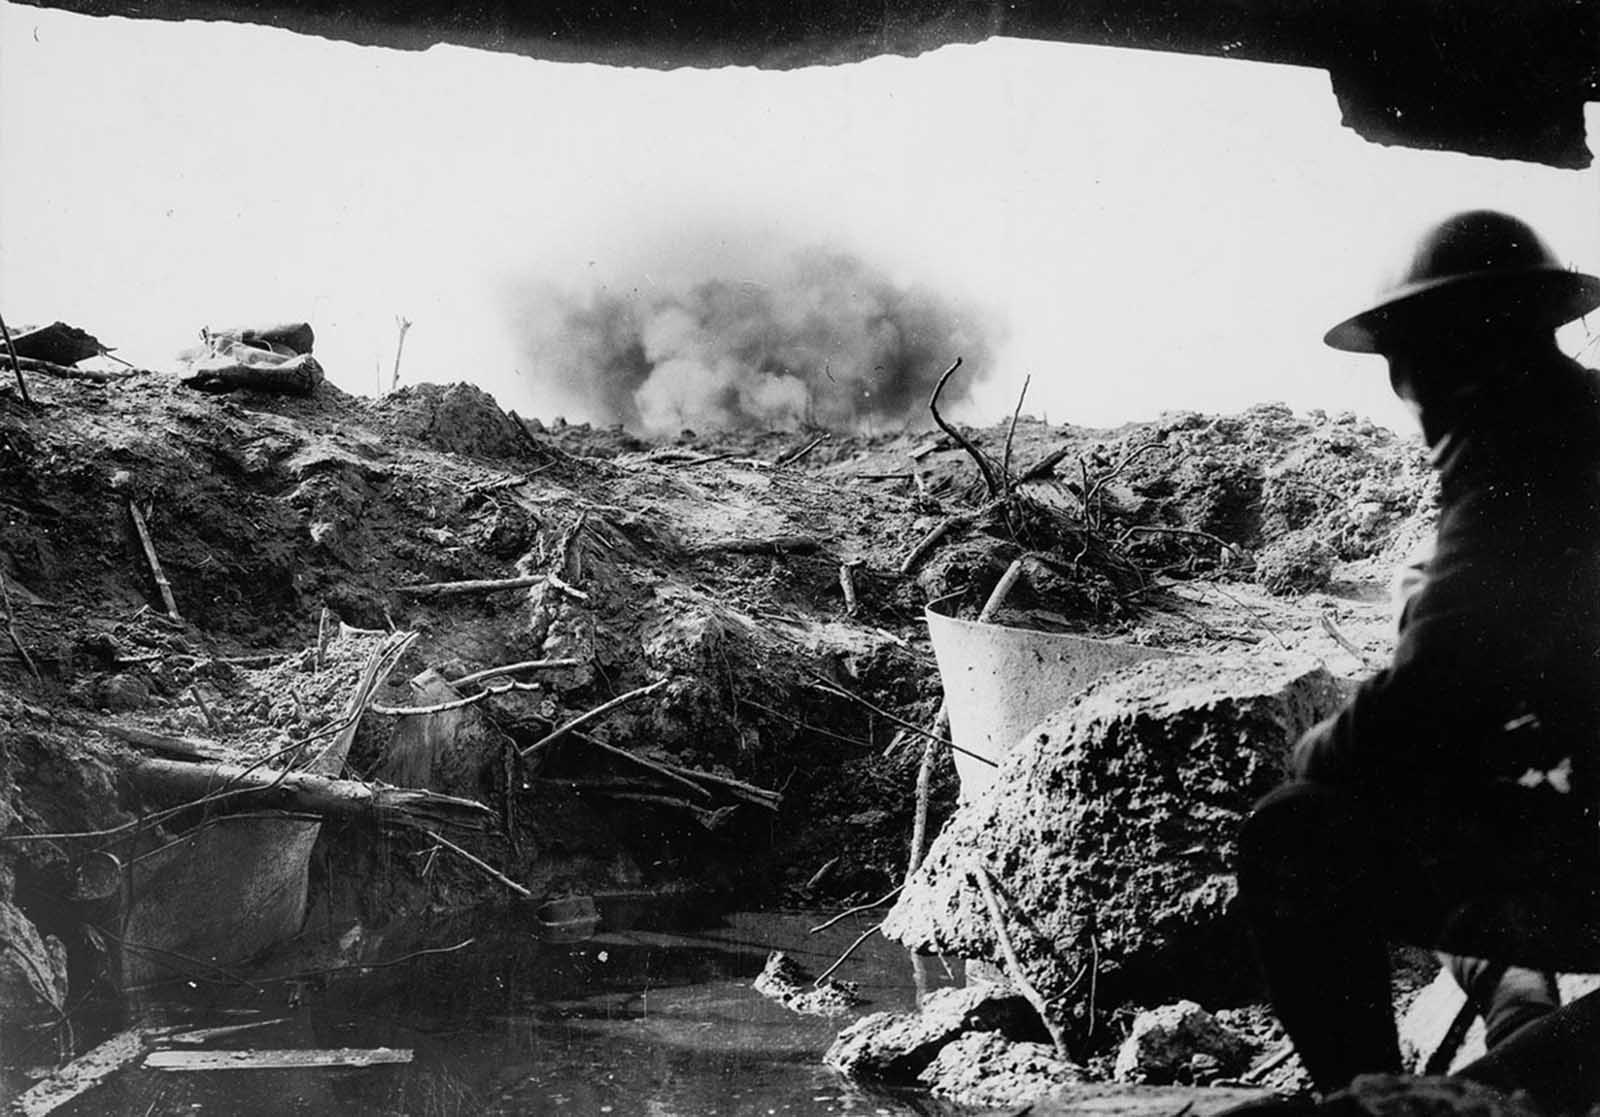 Looking out across a battlefield from an Anzac pill box near the Belgian city of Ypres in West Flanders in 1917. When German forces met stiff resistance in northern France in 1914, a